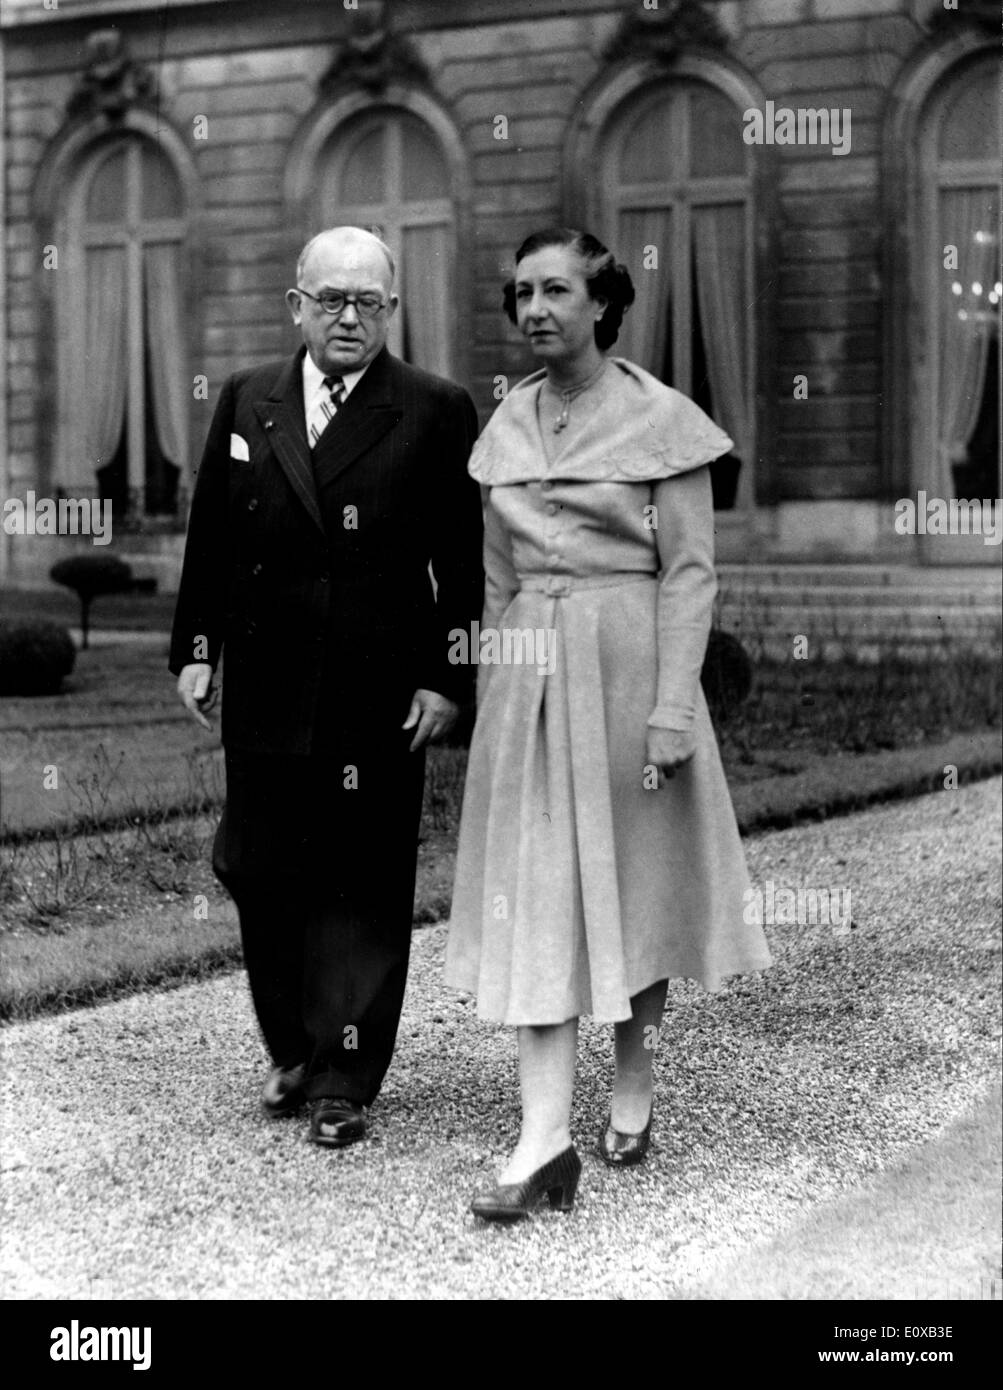 President Auriol walking with his wife Michelle at the Elysee during his septennat - Stock Image